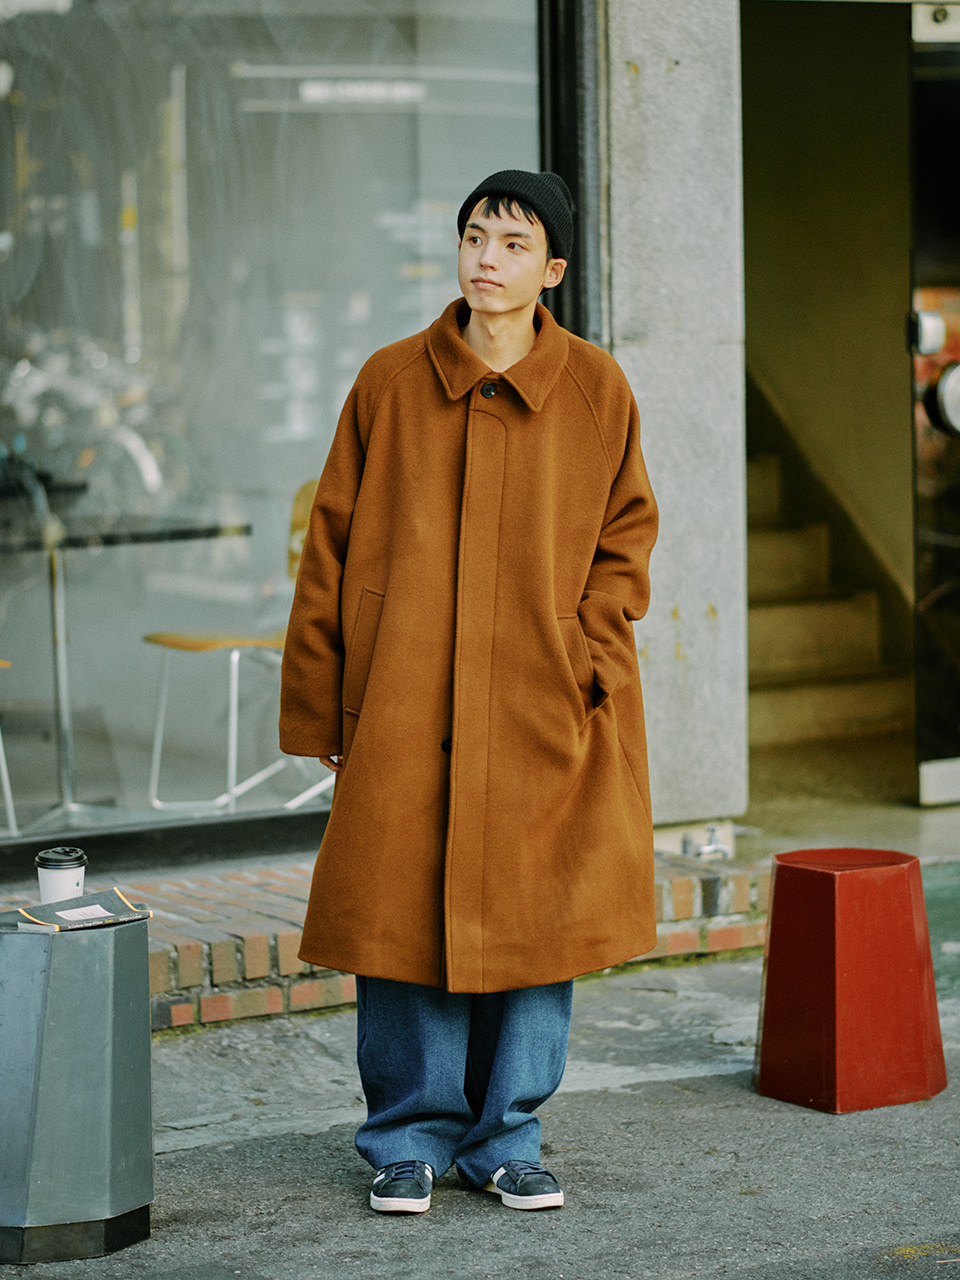 [10/30(금) 예약배송][FW20] Wool Essential Balmacaan Coat(Brown) 스테레오 바이널즈[10/30(금) 예약배송][FW20] Wool Essential Balmacaan Coat(Brown)